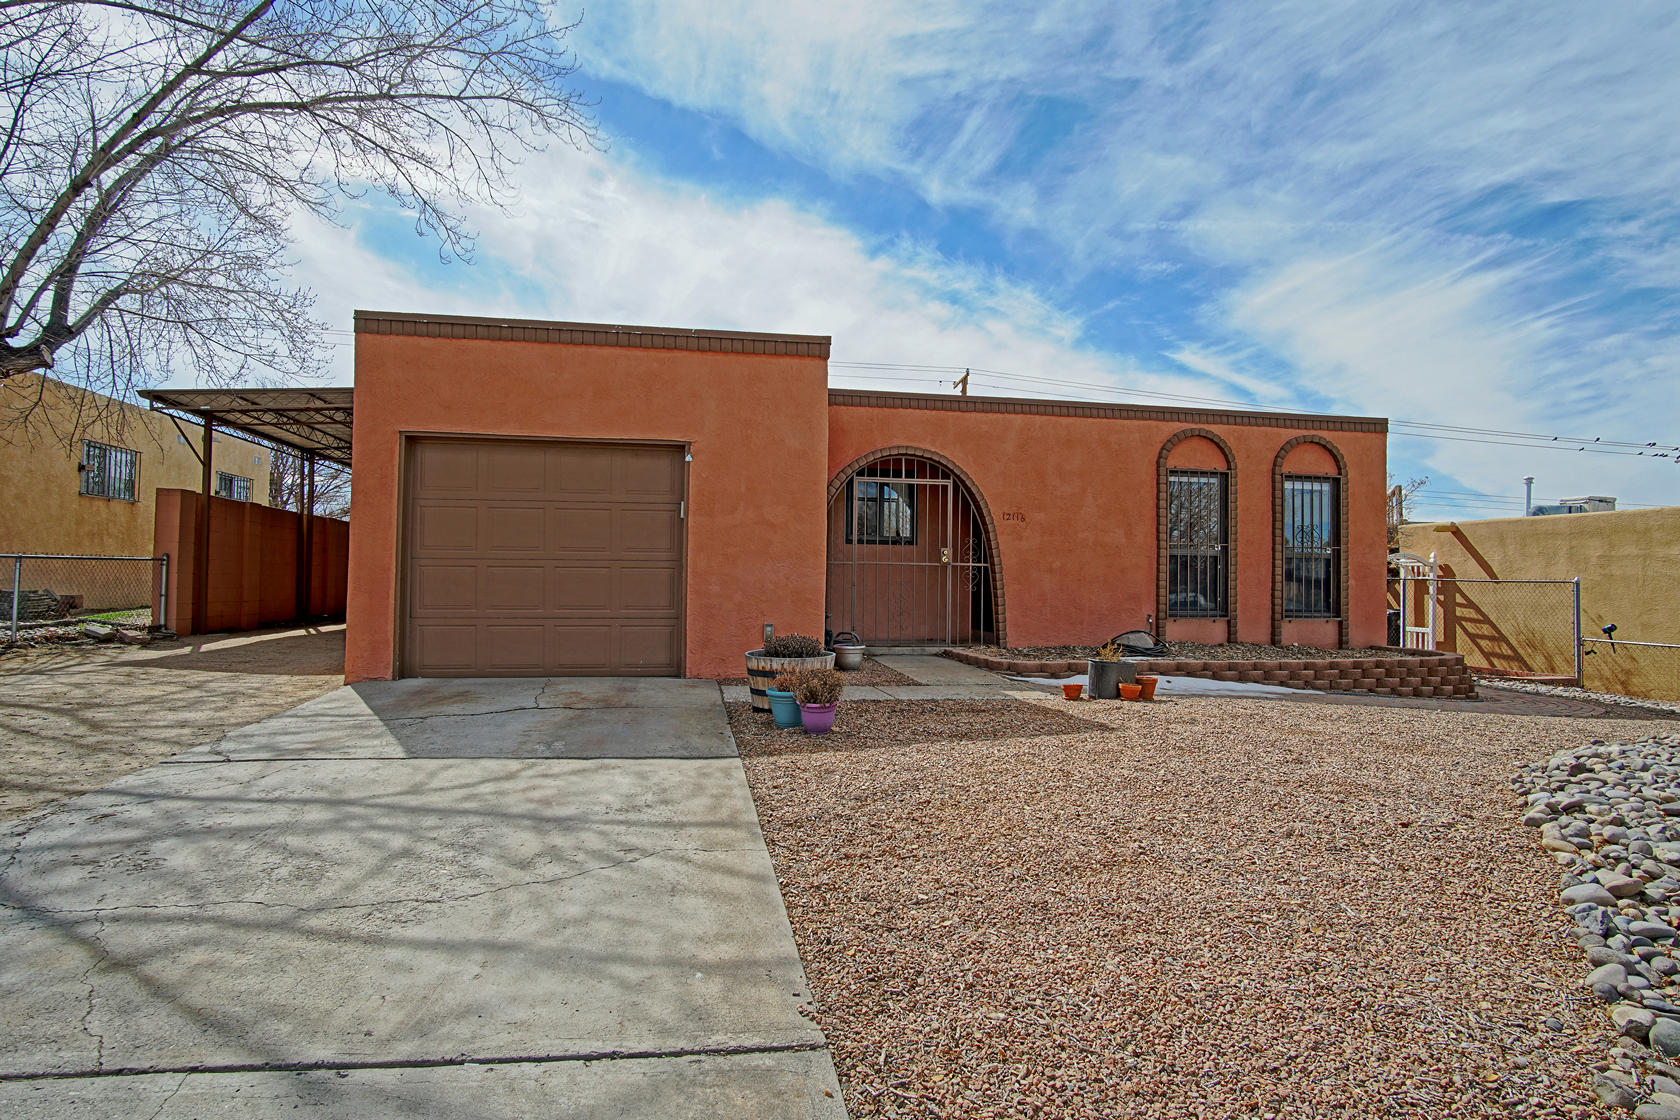 Move in ready! Price Reduced! Spacious home in the NE Heights and Eldorado school district. Updates include newer ceramic tile, vinyl plank flooring, and one-year old master cool. Solar panels are only 3 years old and the sellers are willing to pay them off for you. Featuring large kitchen with oak cabinets, and all appliances will stay. Ceiling fans throughout the home. Do you like to entertain? Bring the pool table or arcade games! Family/game room can hold it all and would be a perfect place to hang out. It also has its own evaporated air conditioner and new thermostat. Outside you will find storage shed in the walled backyard, a 60 ft. metal carport for covered parking, in addition to the single car garage. Did I mention, it has a TPO roof. Right around the corner are school and shops.